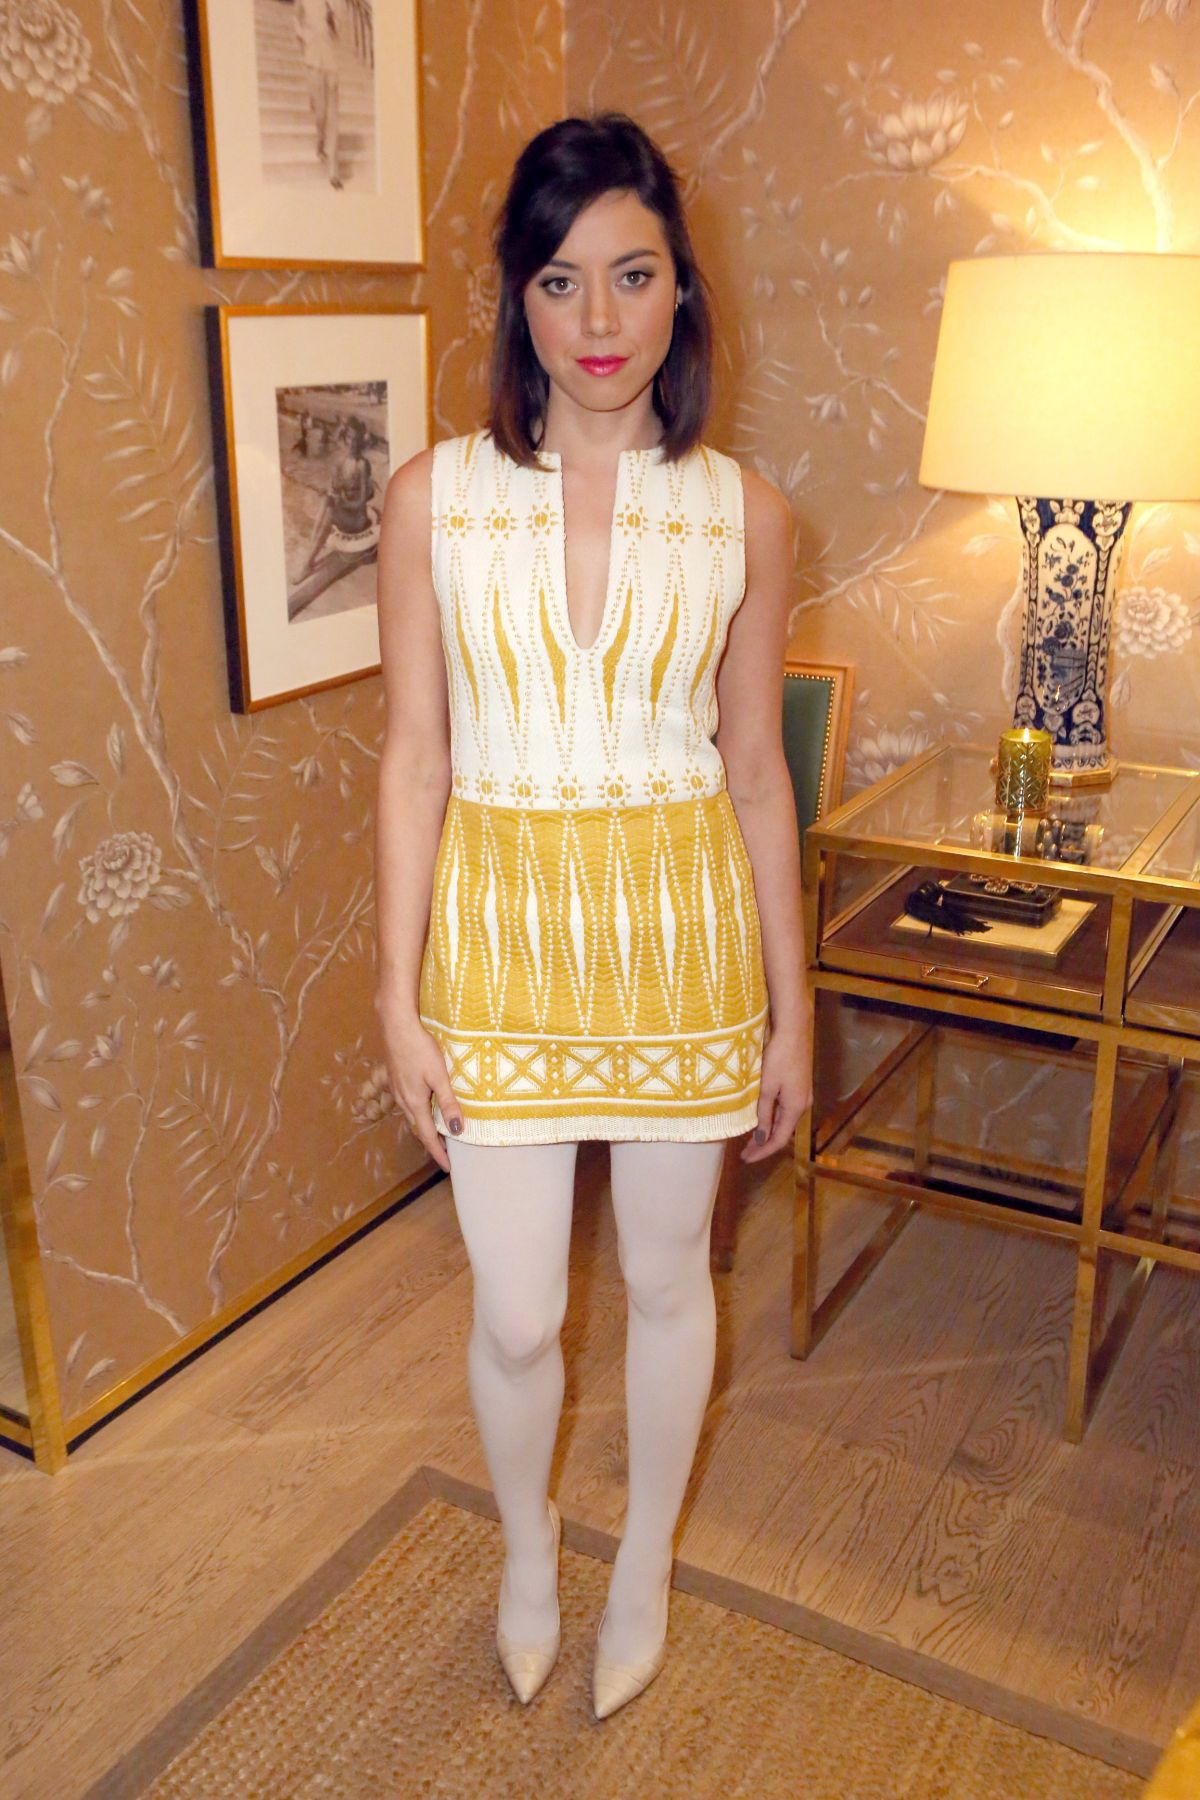 d6b5e5916c1 AUBREY PLAZA at Vogue and Tory Burch Celebrate the Tory Burch Watch  Collection